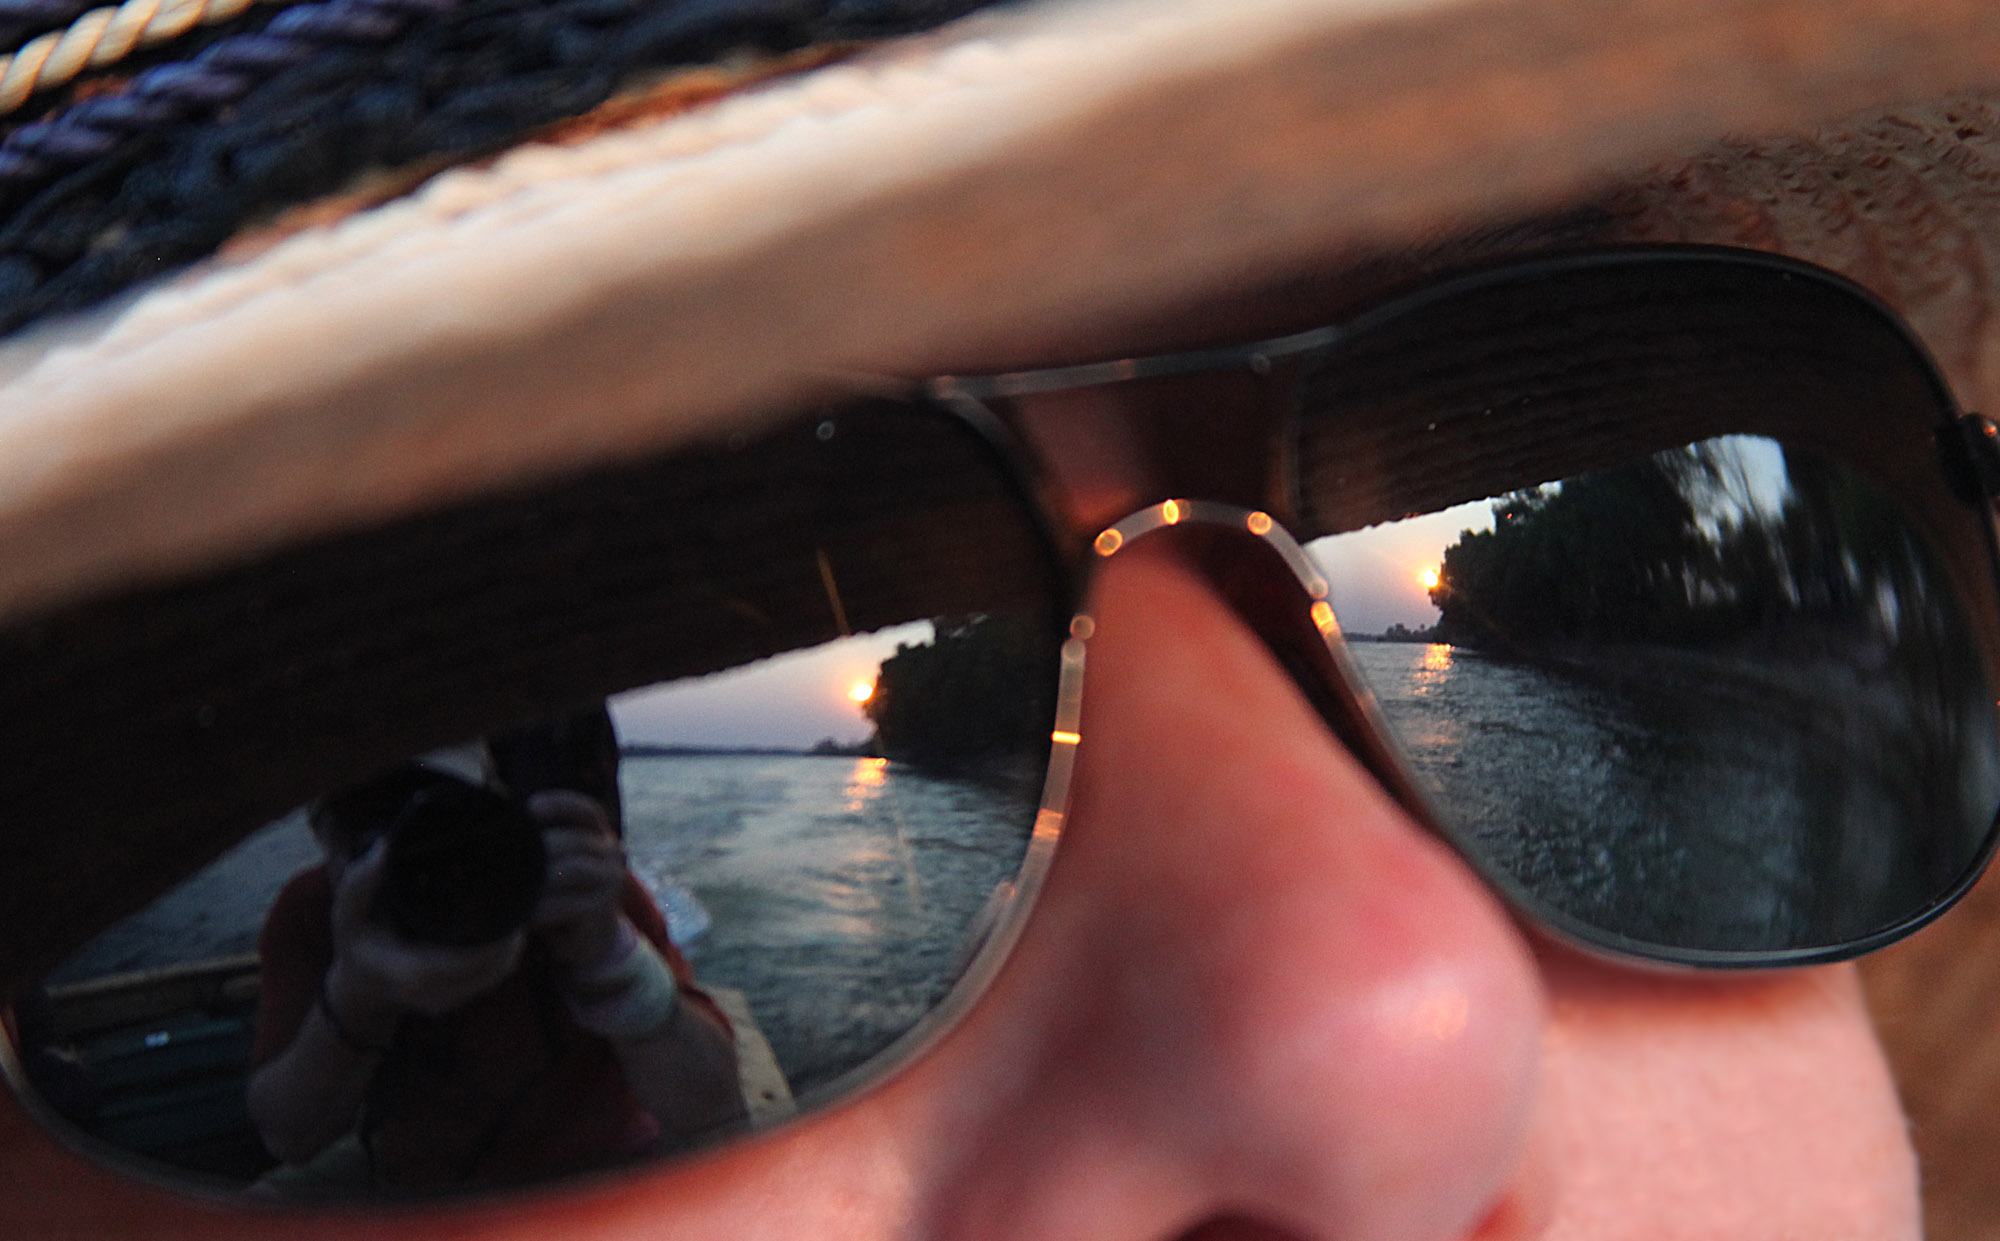 Zambesi sunset reflected in Kelly's sunglasses